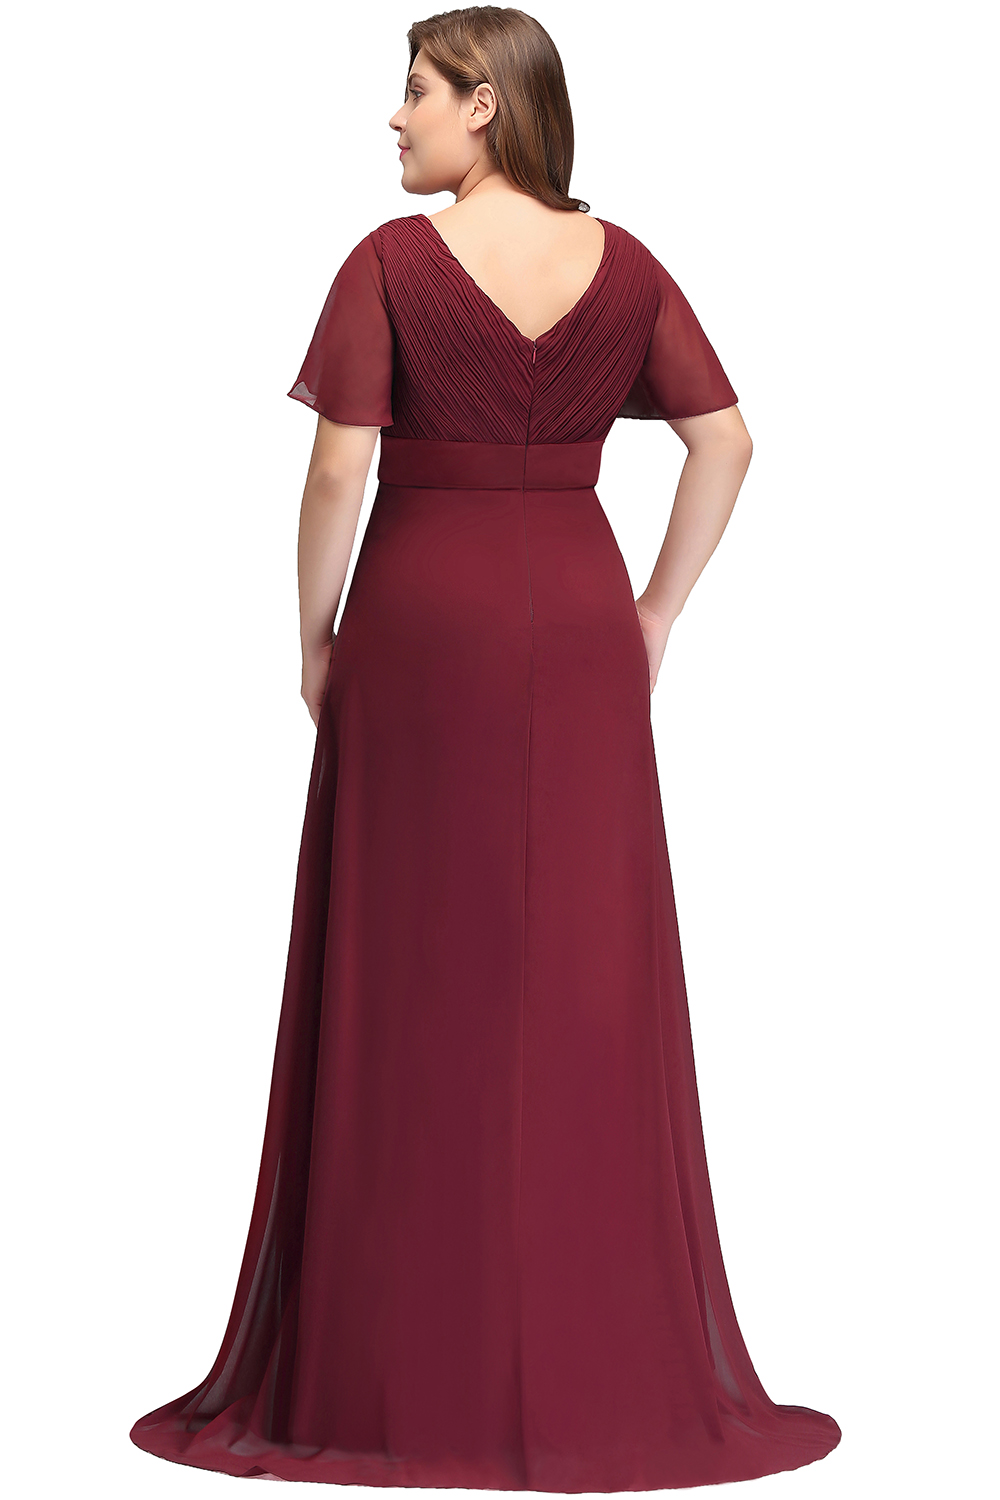 2019 Burgundy Navy Blue Chiffon Mermaid Long Mother Of The Bride Dresses Plus Size Wedding Party Guest Dress